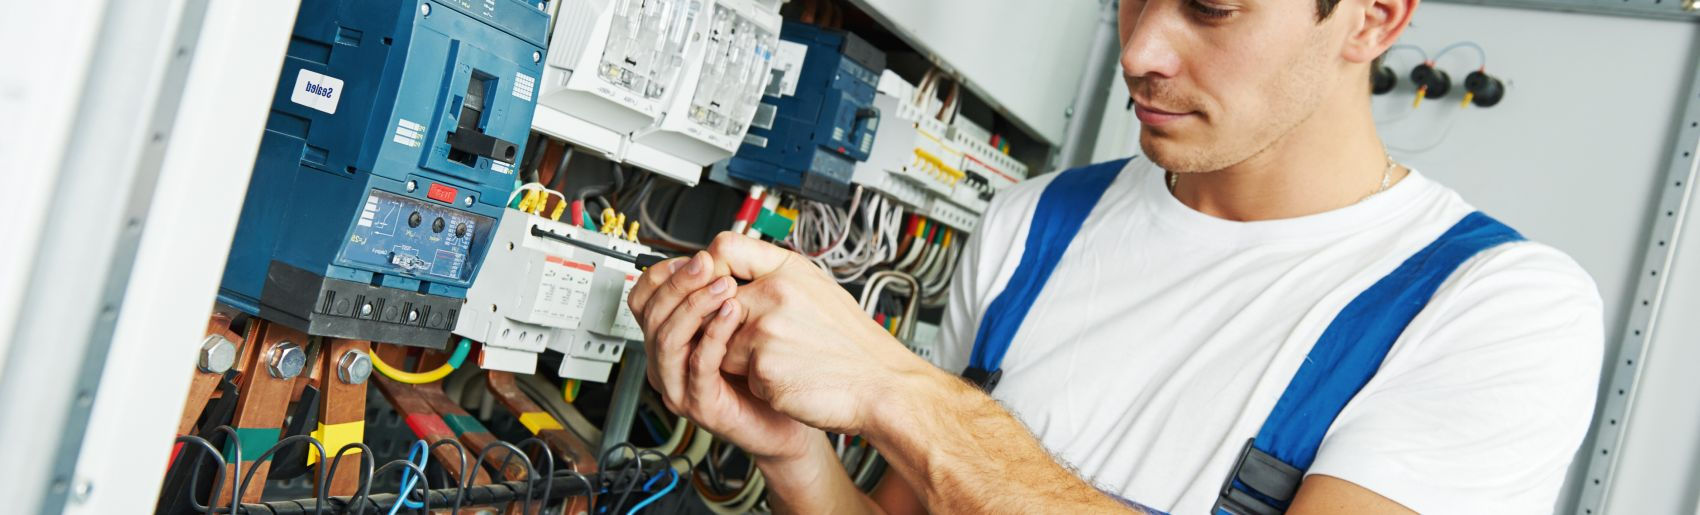 commercial electrician in albuquerque